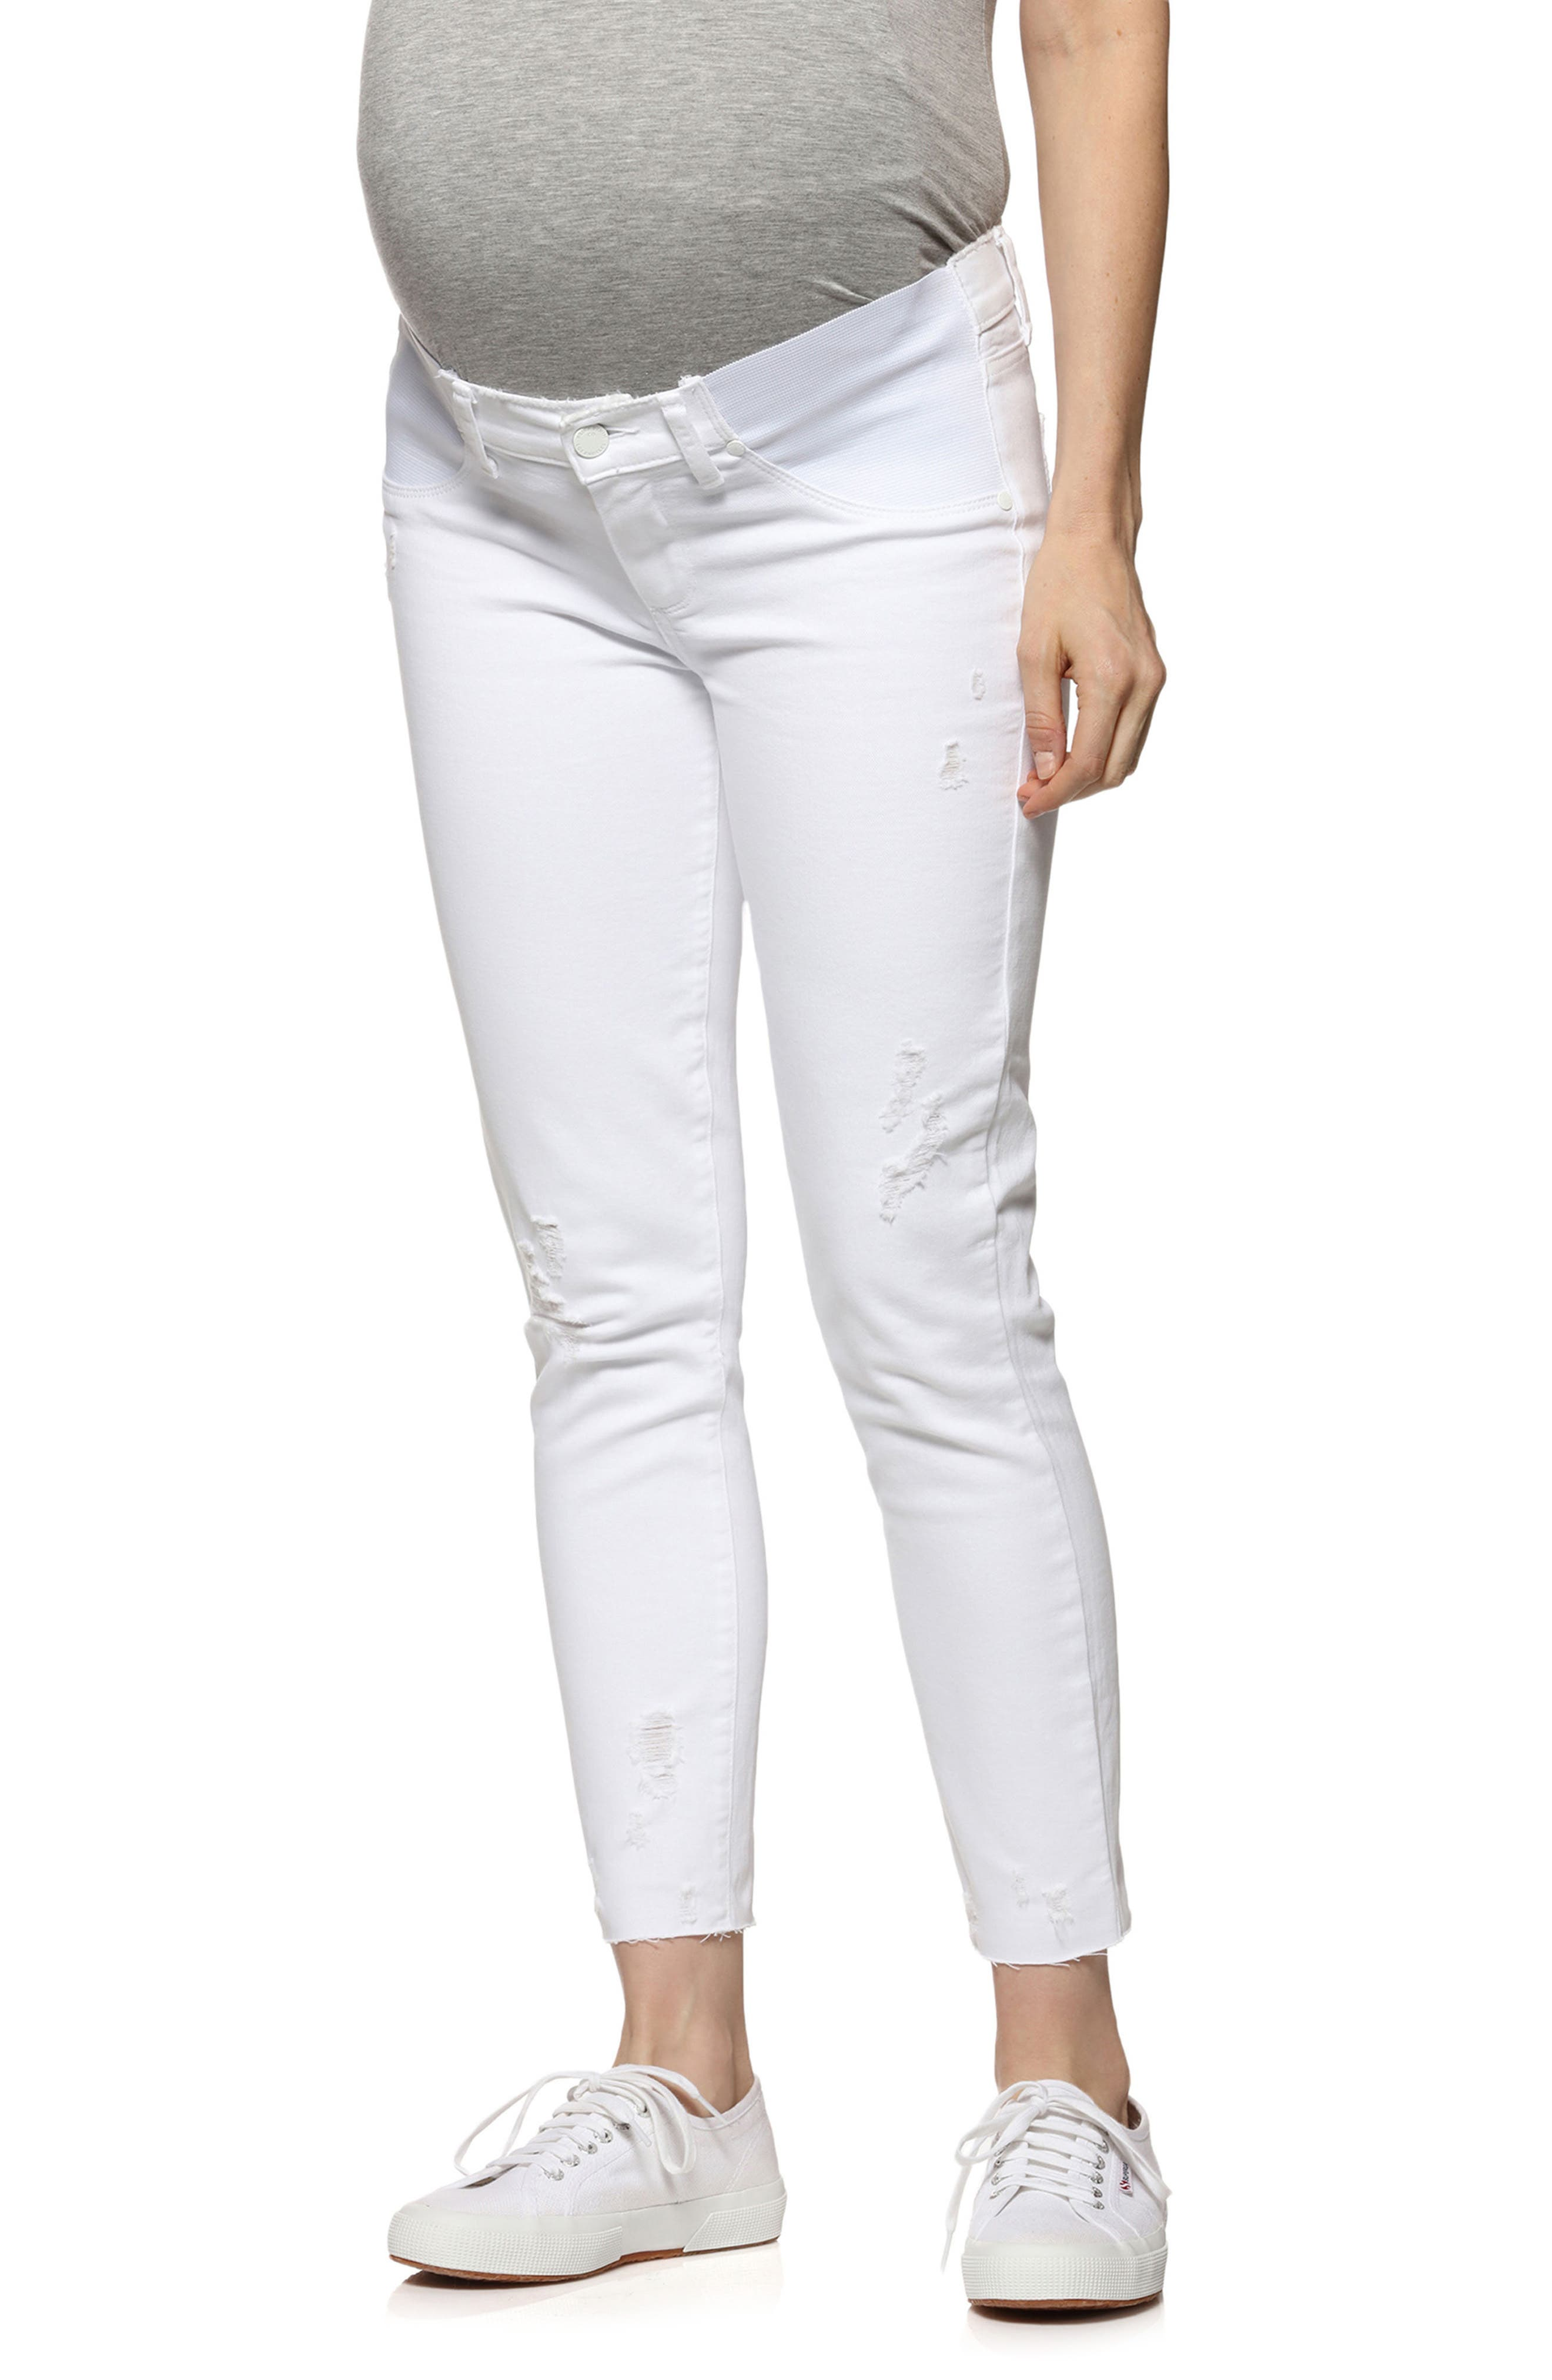 Verdugo Raw Hem Crop Skinny Maternity Jeans,                         Main,                         color, Whiteout Destructed